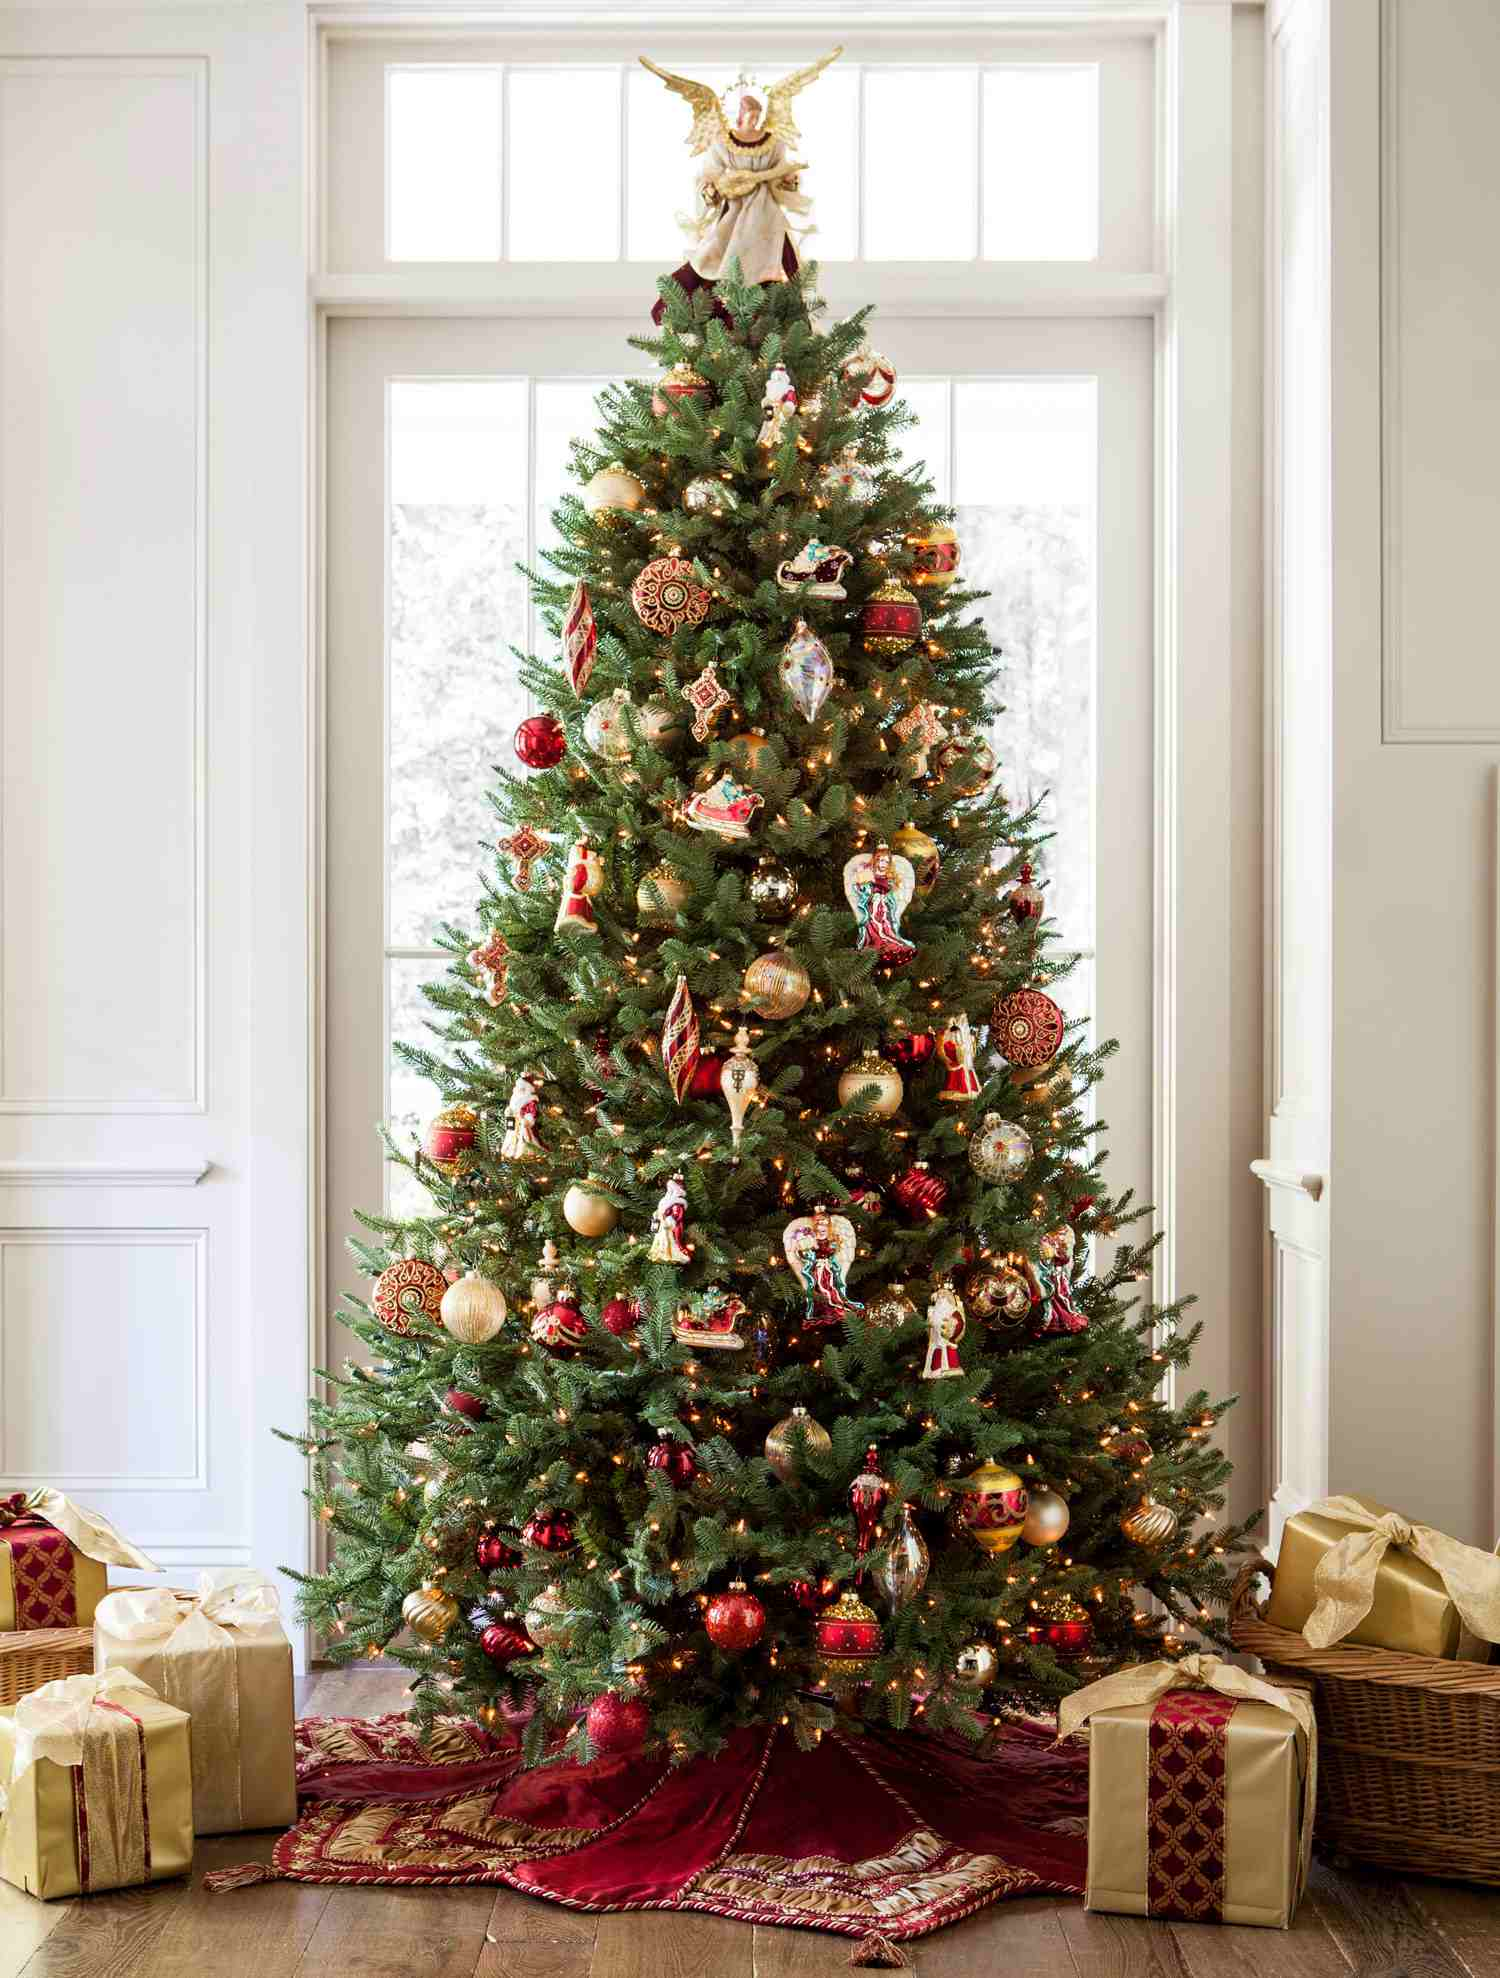 balsam beauty and noel style tree christmas tree decorating ideas. Black Bedroom Furniture Sets. Home Design Ideas